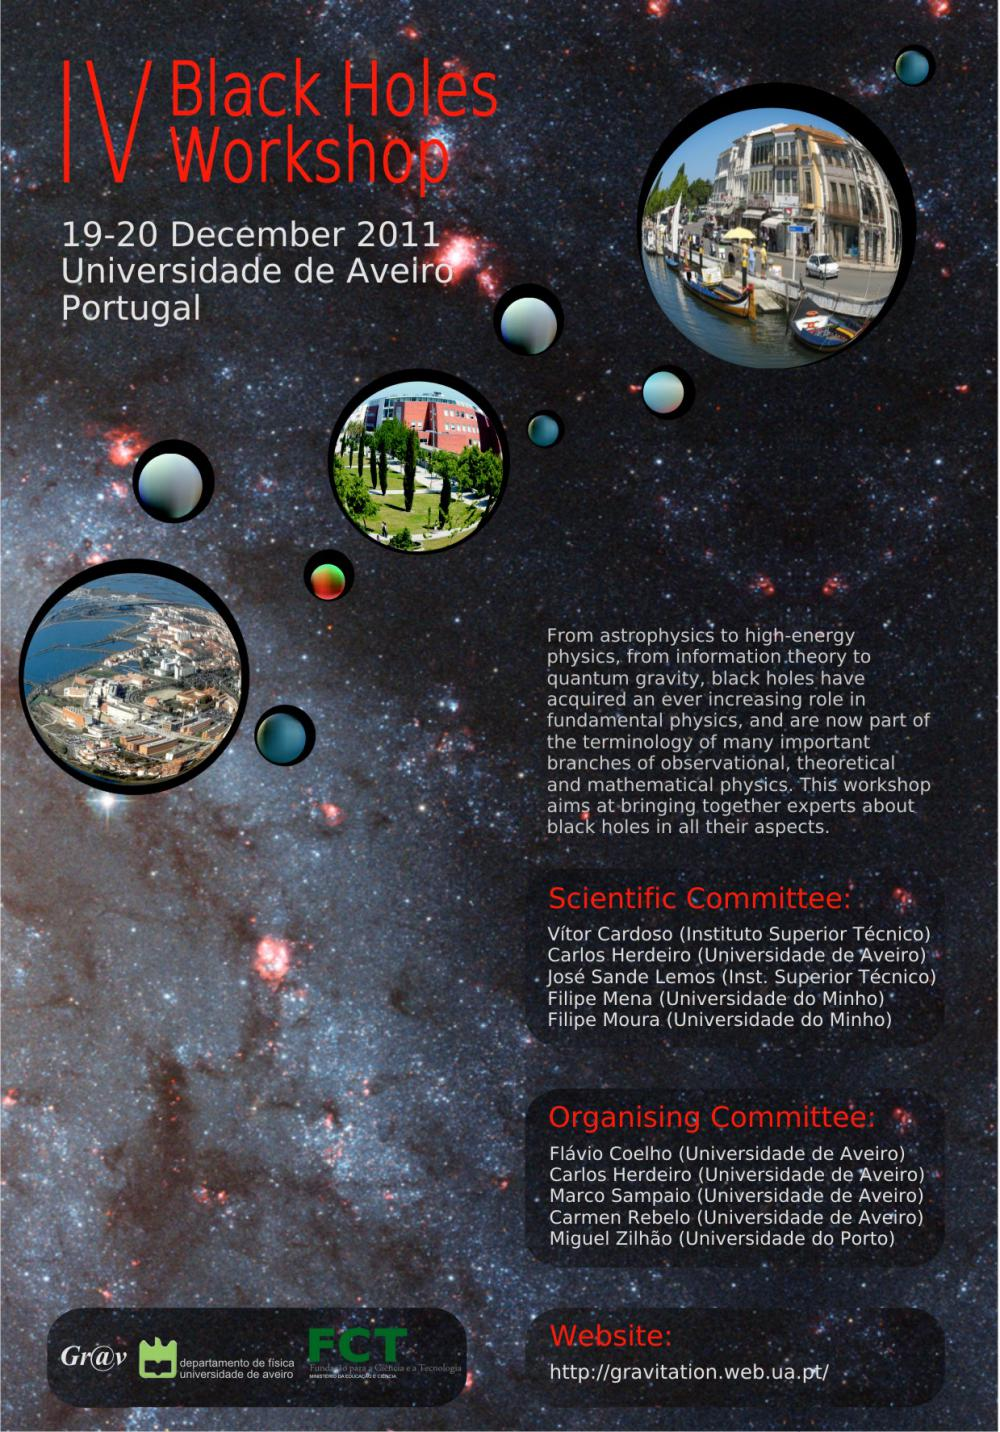 IV Black Holes Workshop's poster